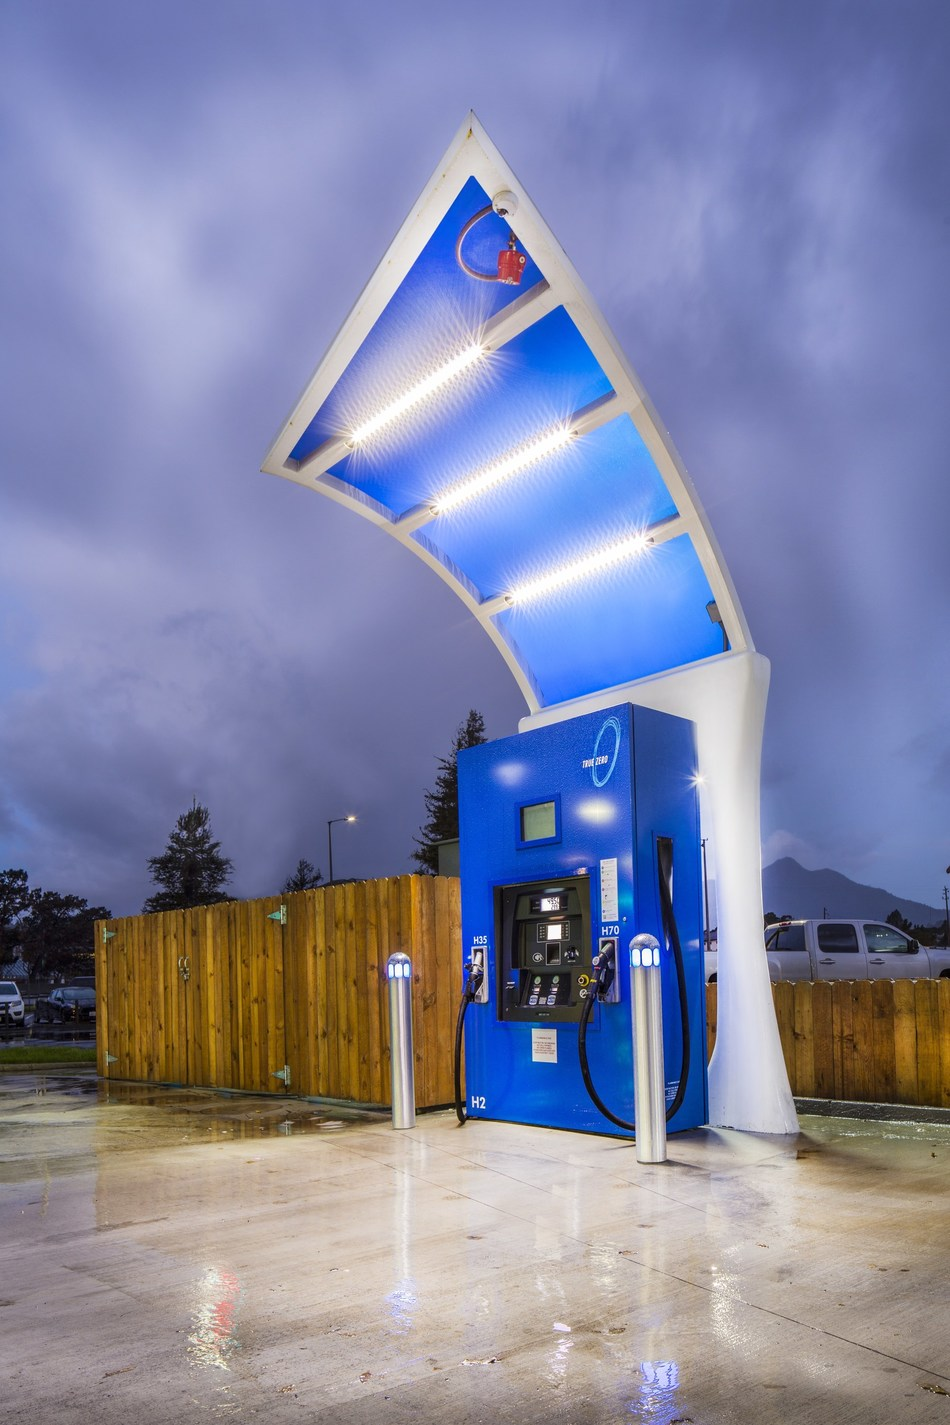 FirstElement Fuel's California Hydrogen Network Receives $24 Million in Funding  to help Quadruple its Retail Capacity.  Seen Here True Zero Mill Valley, CA Station.